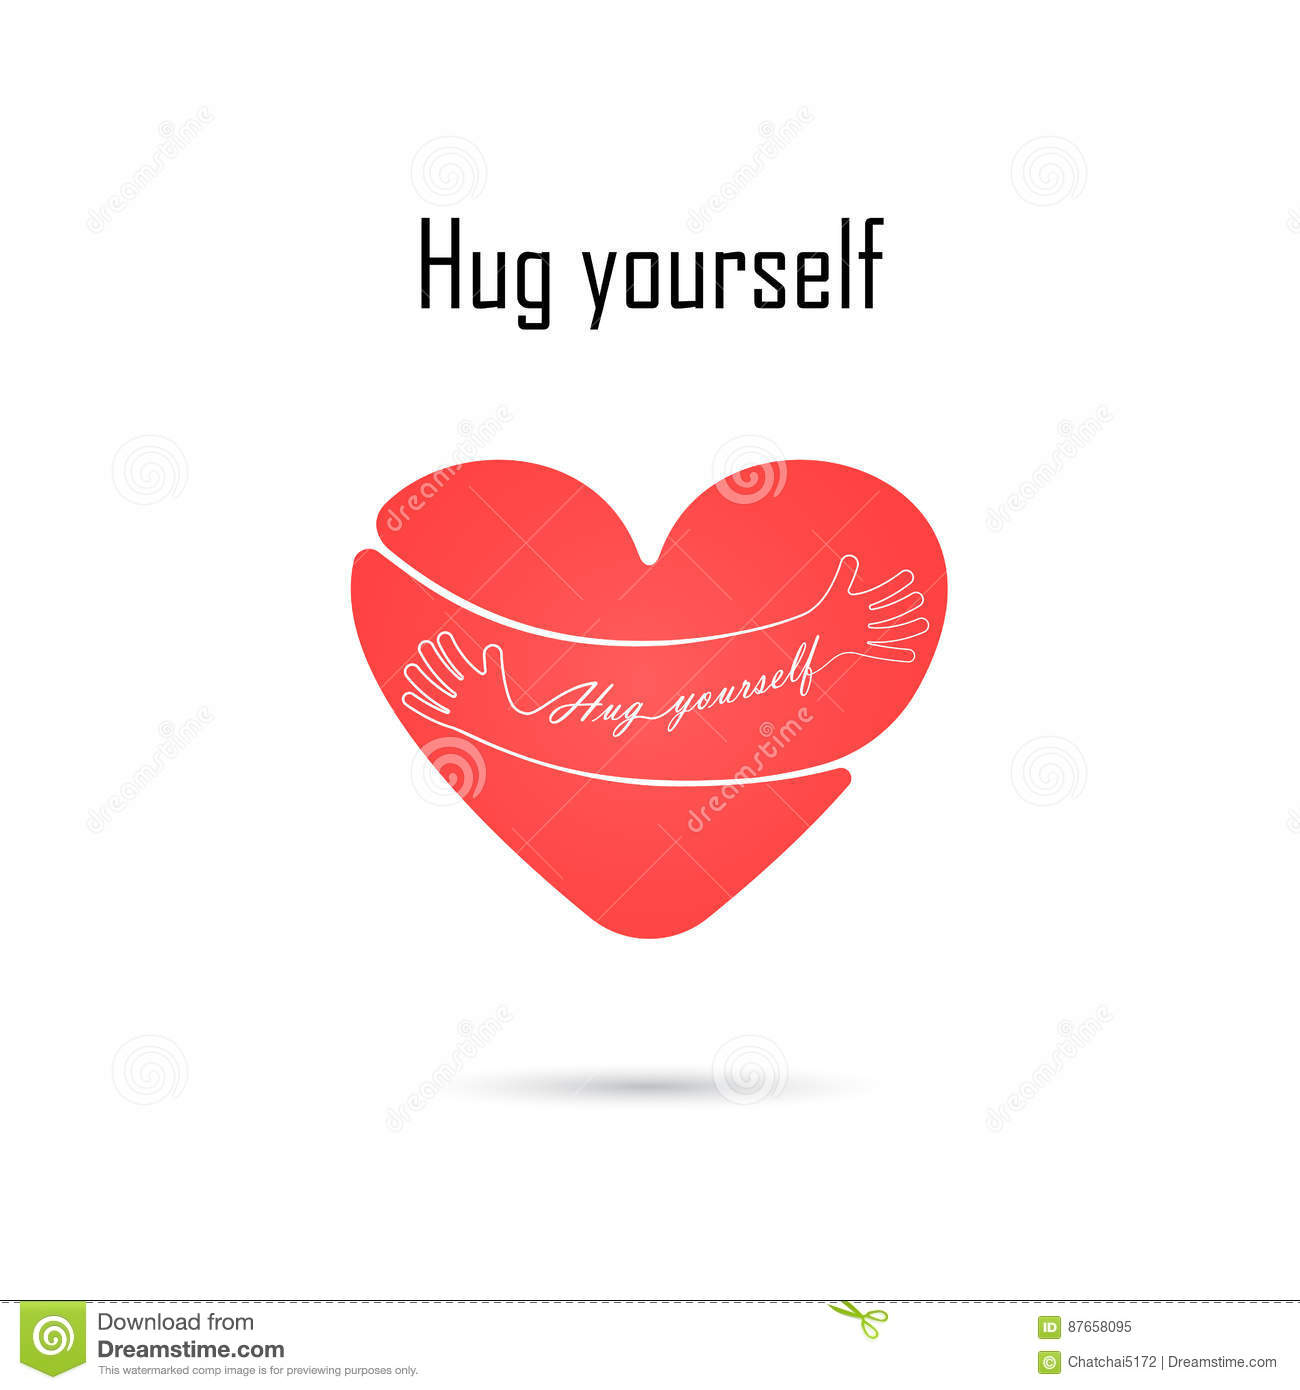 Hug Yourself Logolove Yourself Logolove And Heart Care Iconem